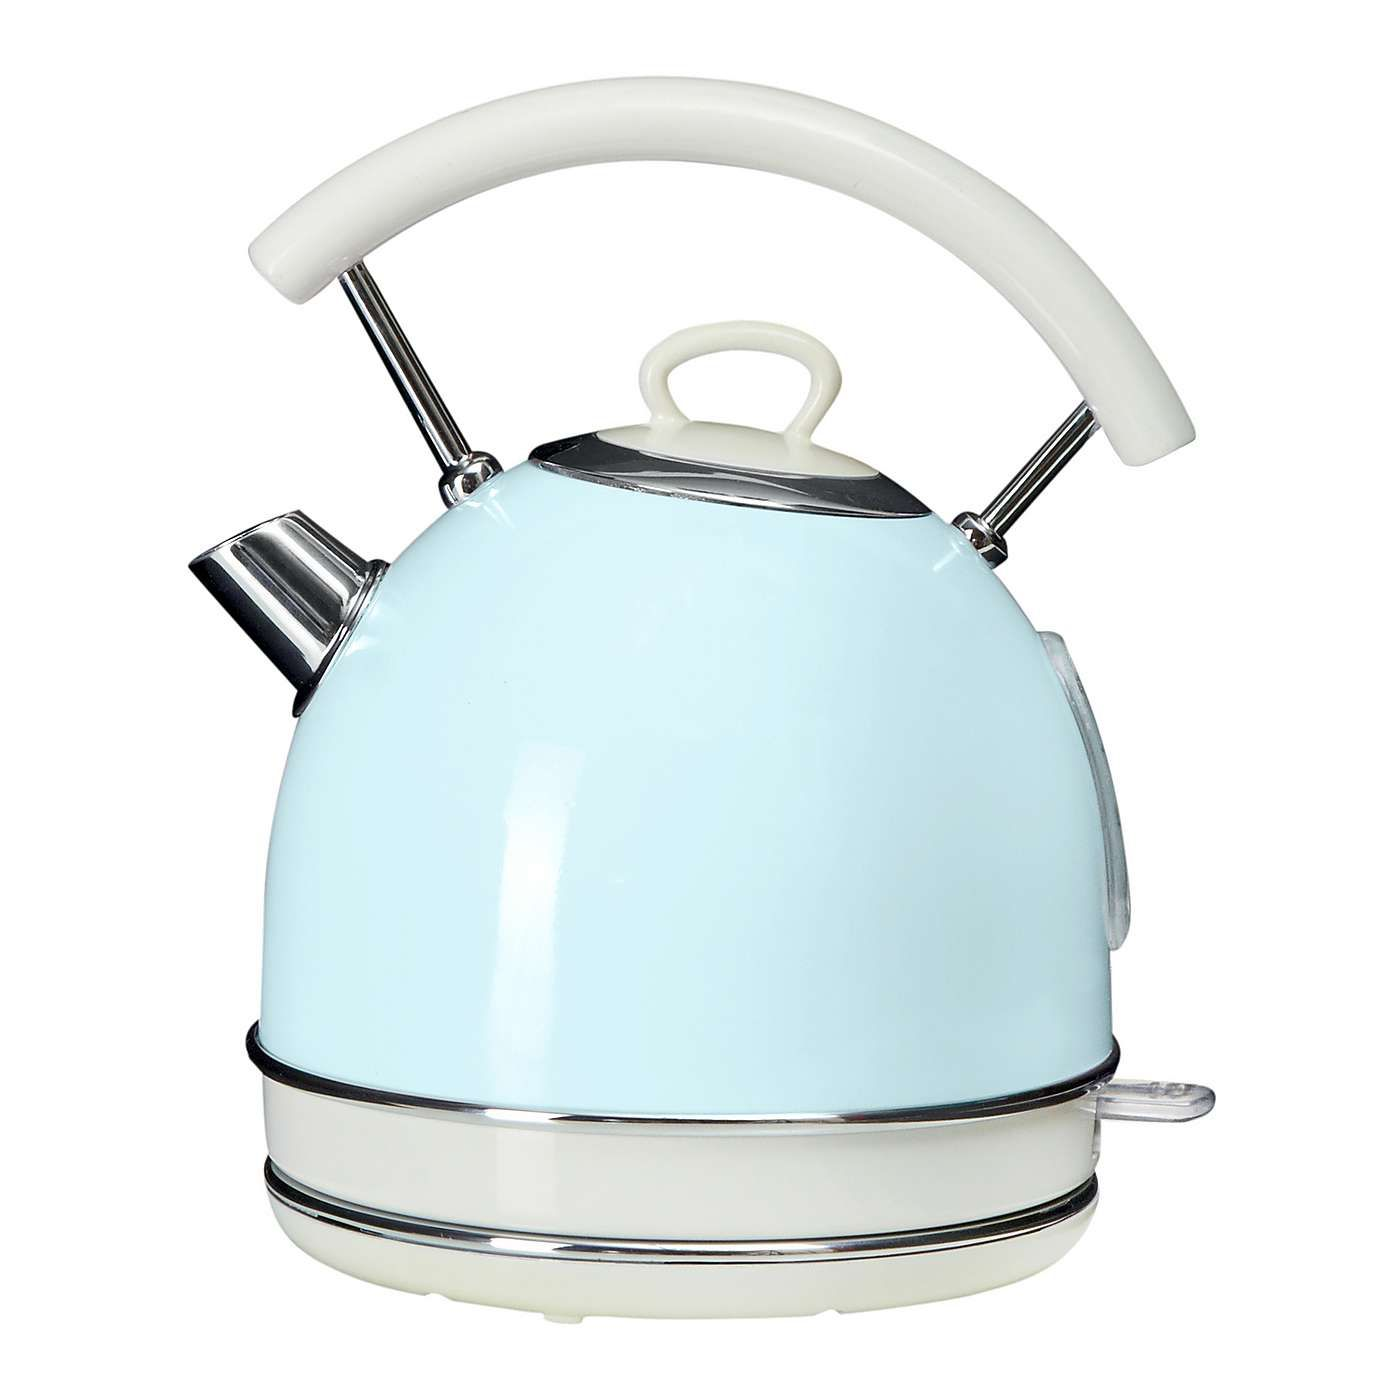 Best Kitchen Gallery: Candy Rose 1 7l Duck Egg Kettle Dunelm Decorating Pinterest of Kettles For Kitchens on rachelxblog.com